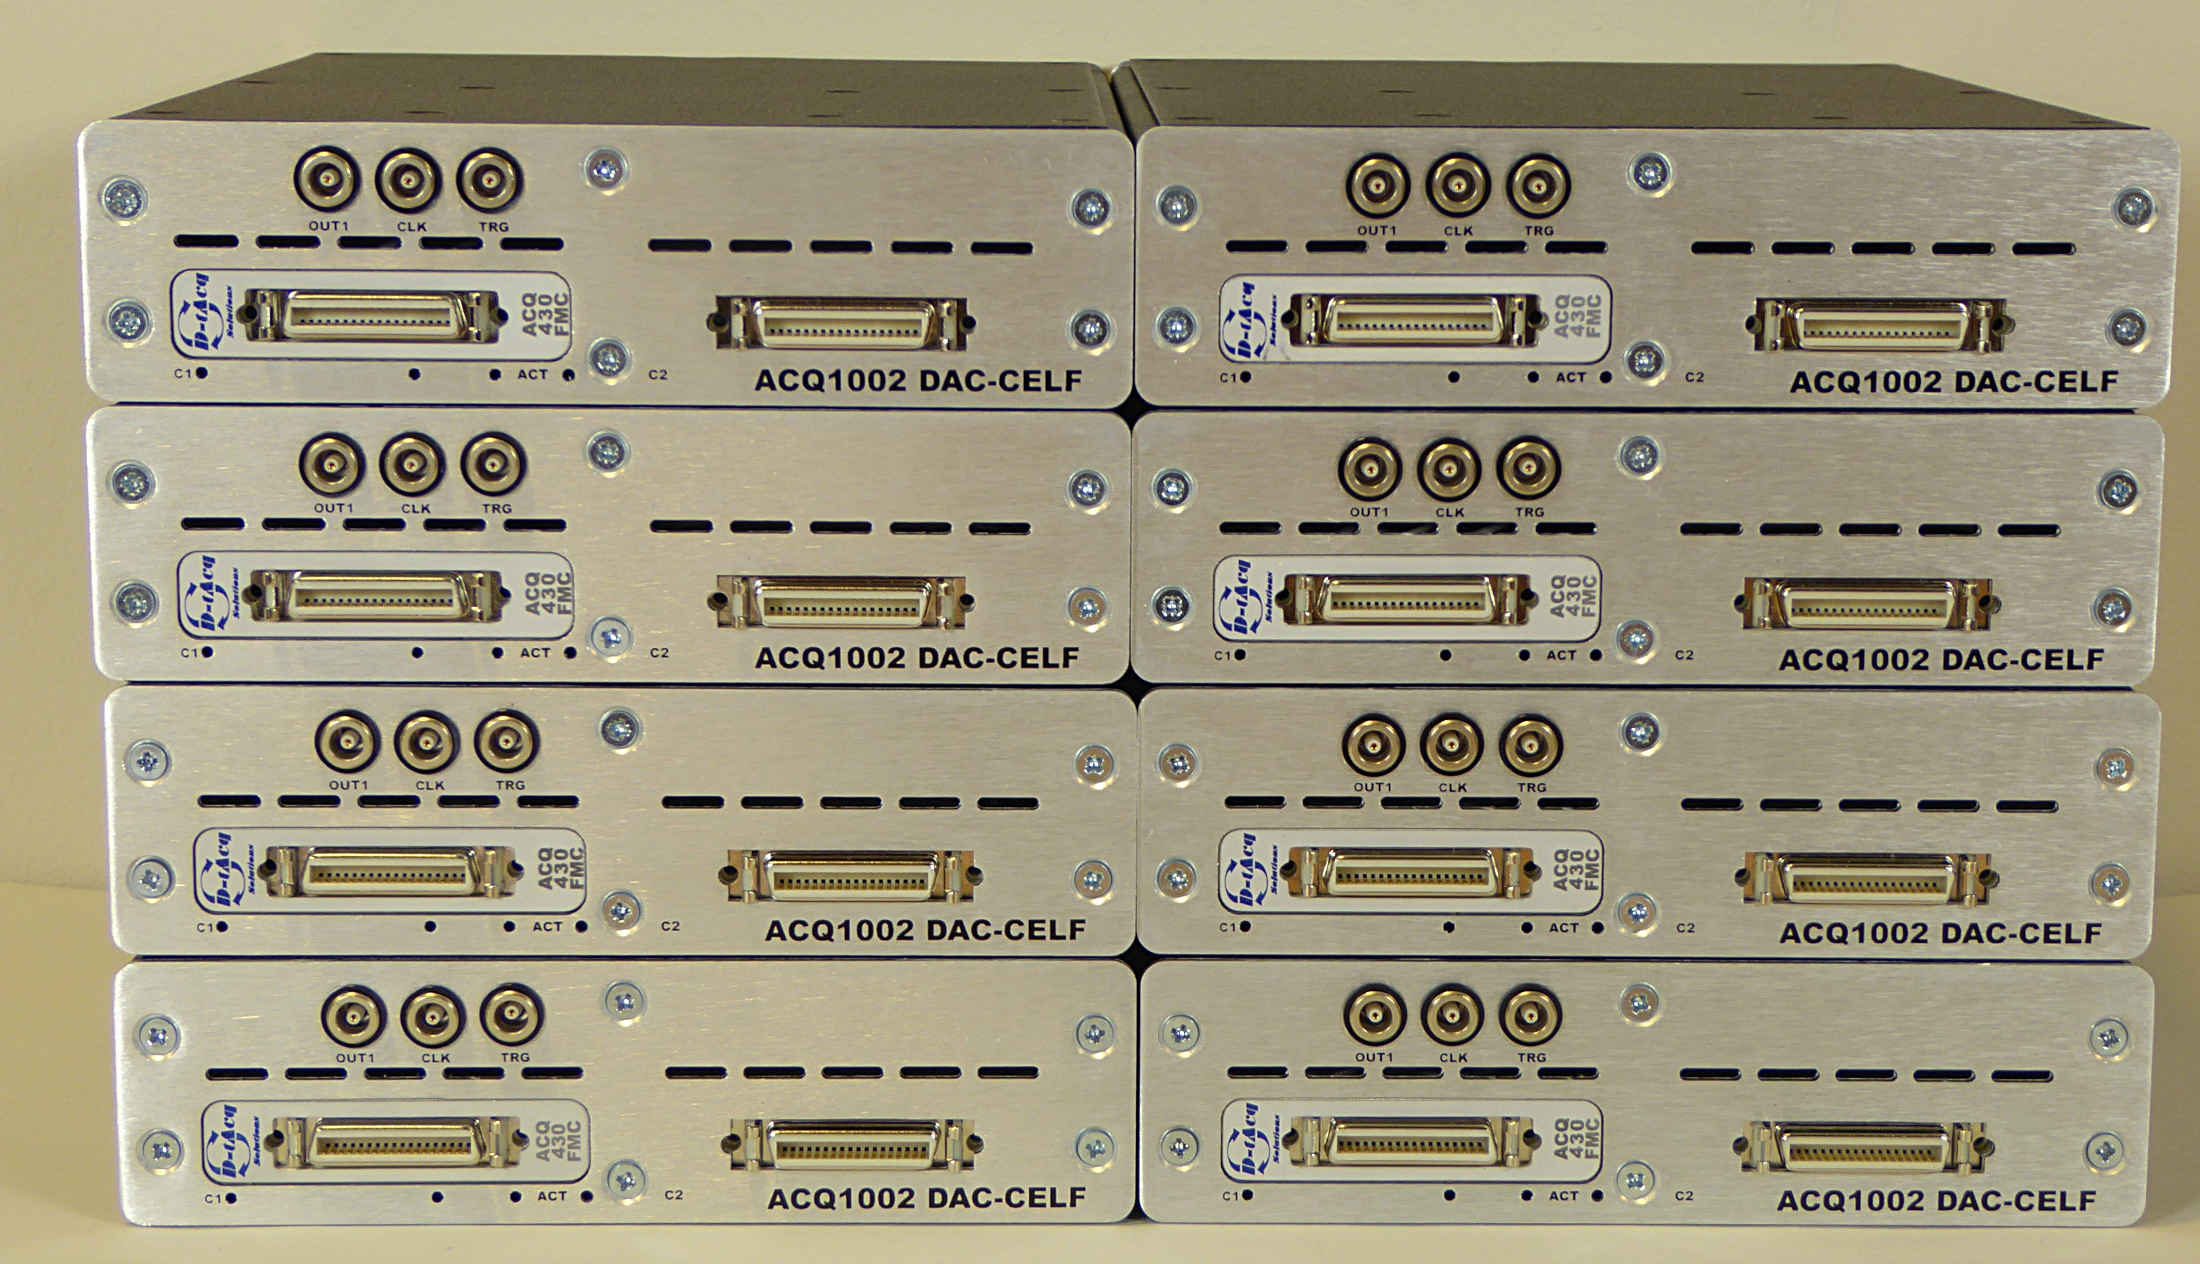 compact, rack/stack units